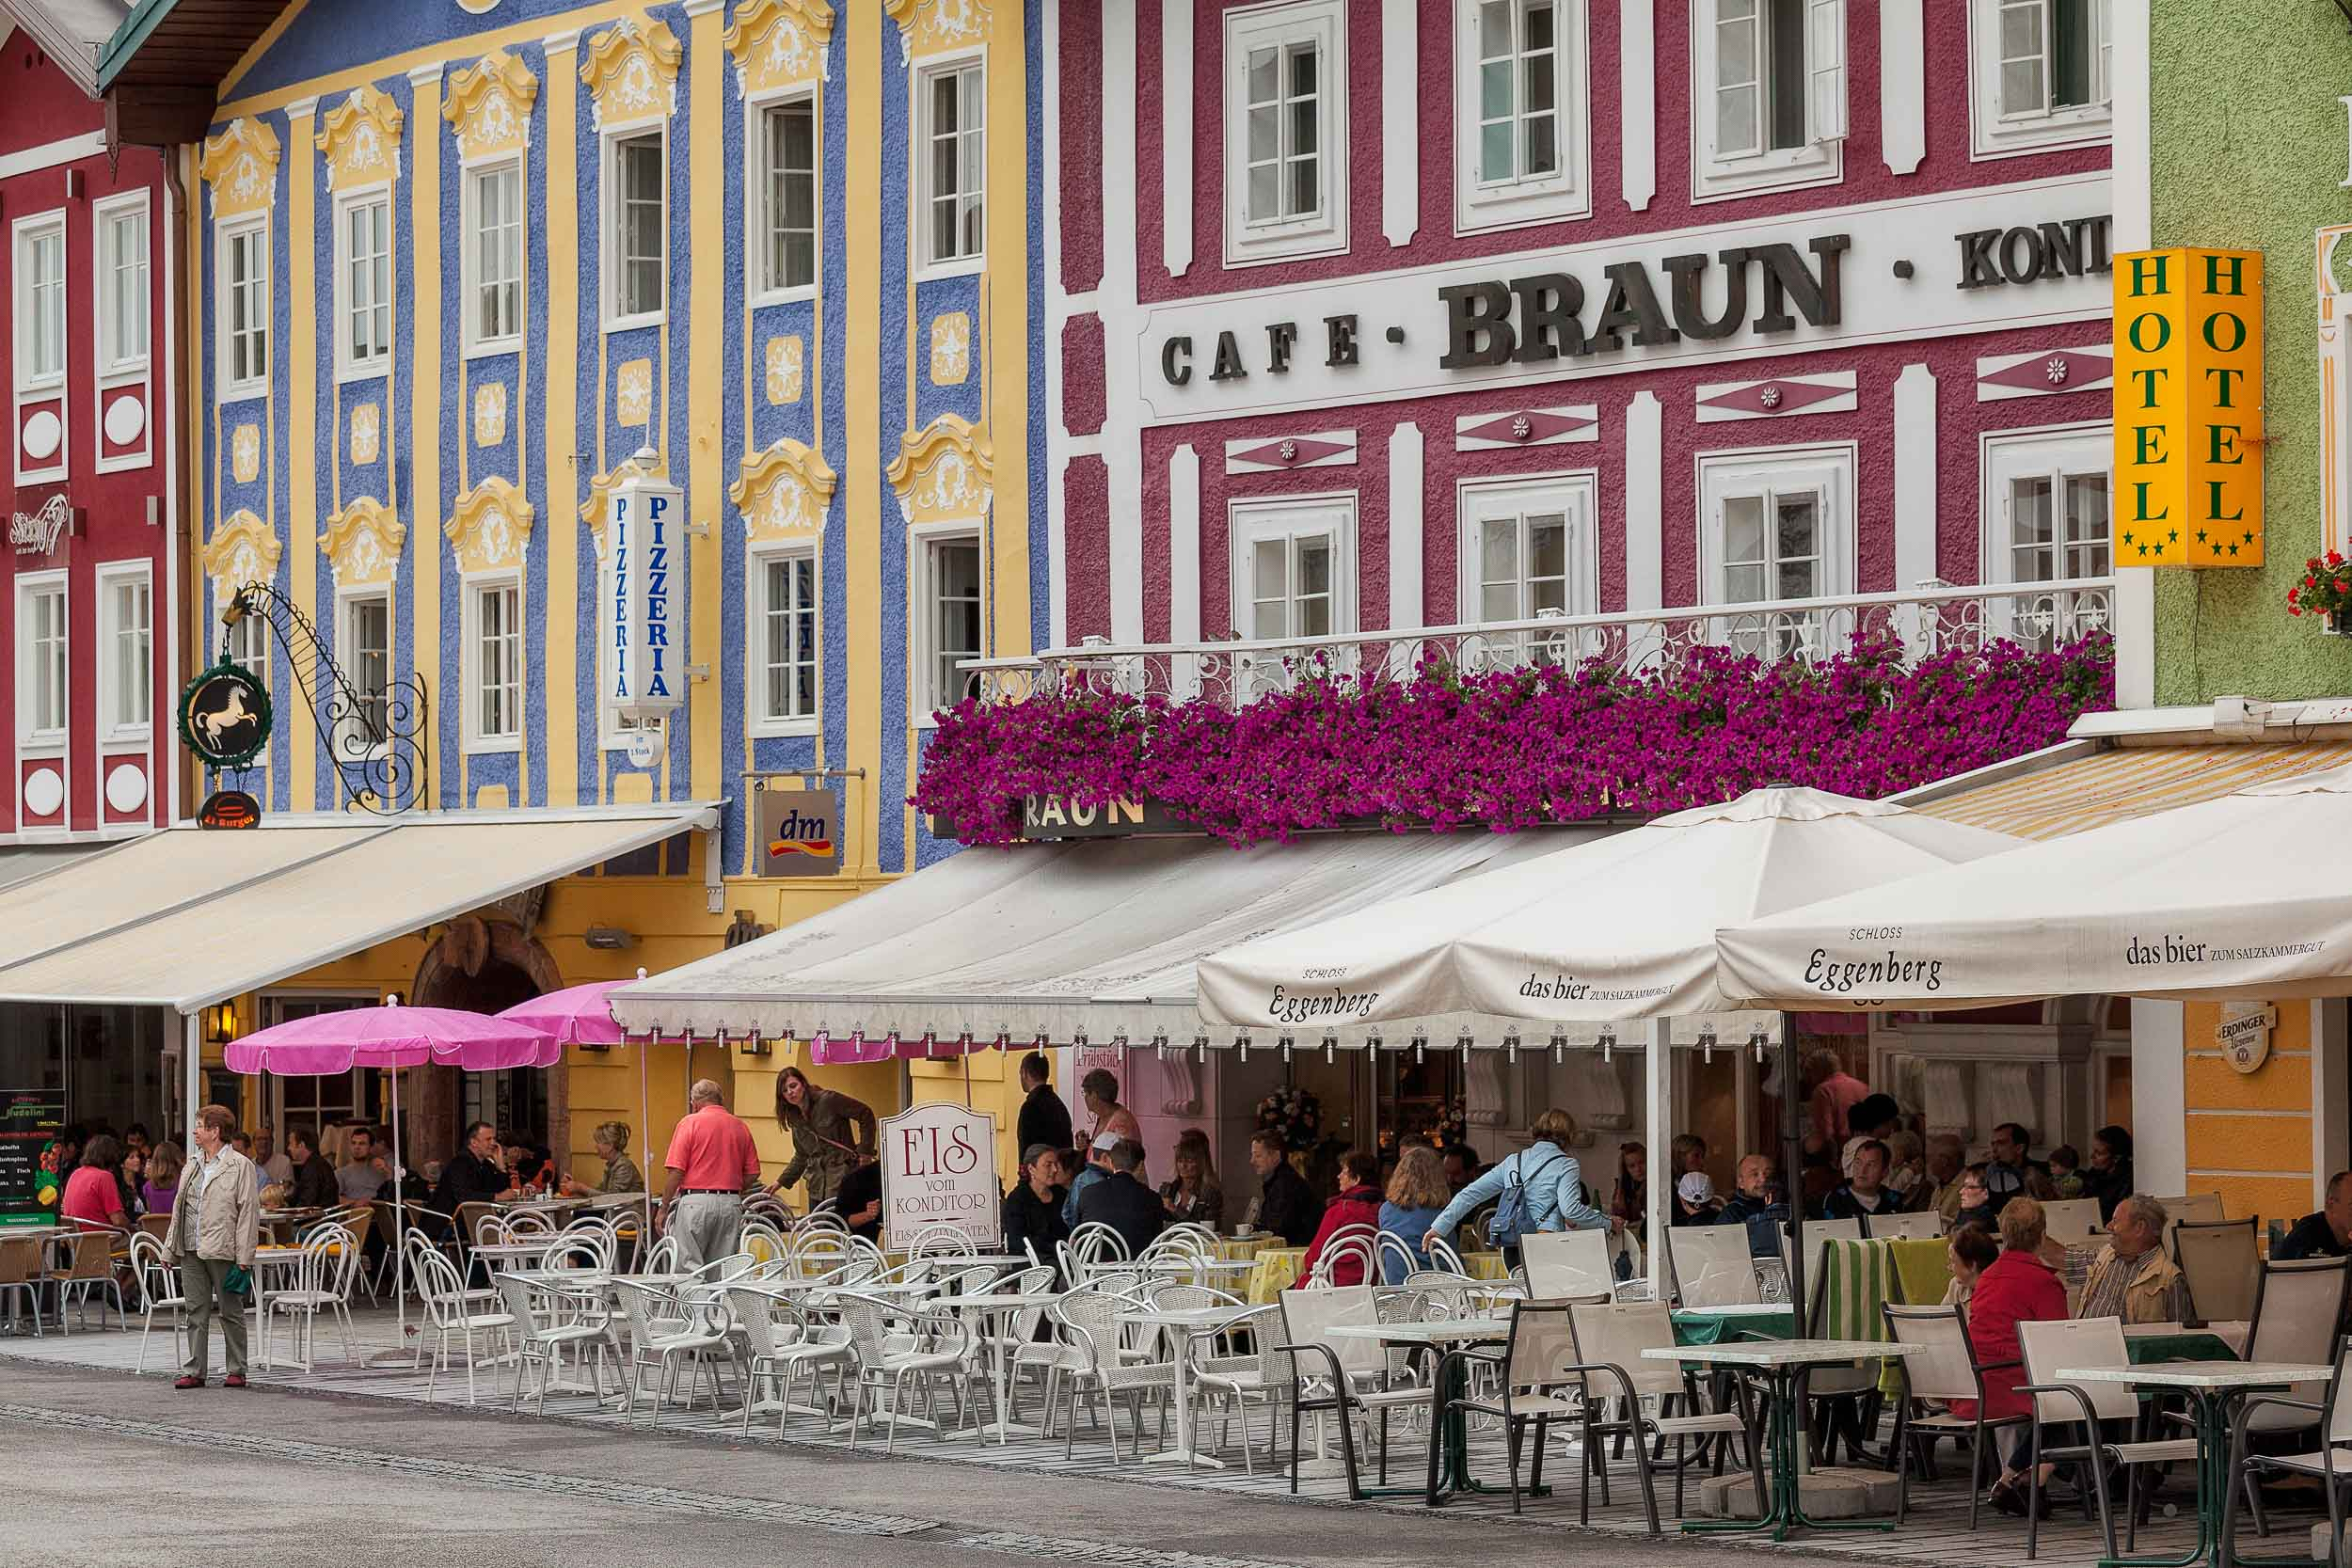 Fantastic colors adorn the    Cafe-Konditorei Braun    and surrounding buildings in the town of    Mondsee, Austria   .